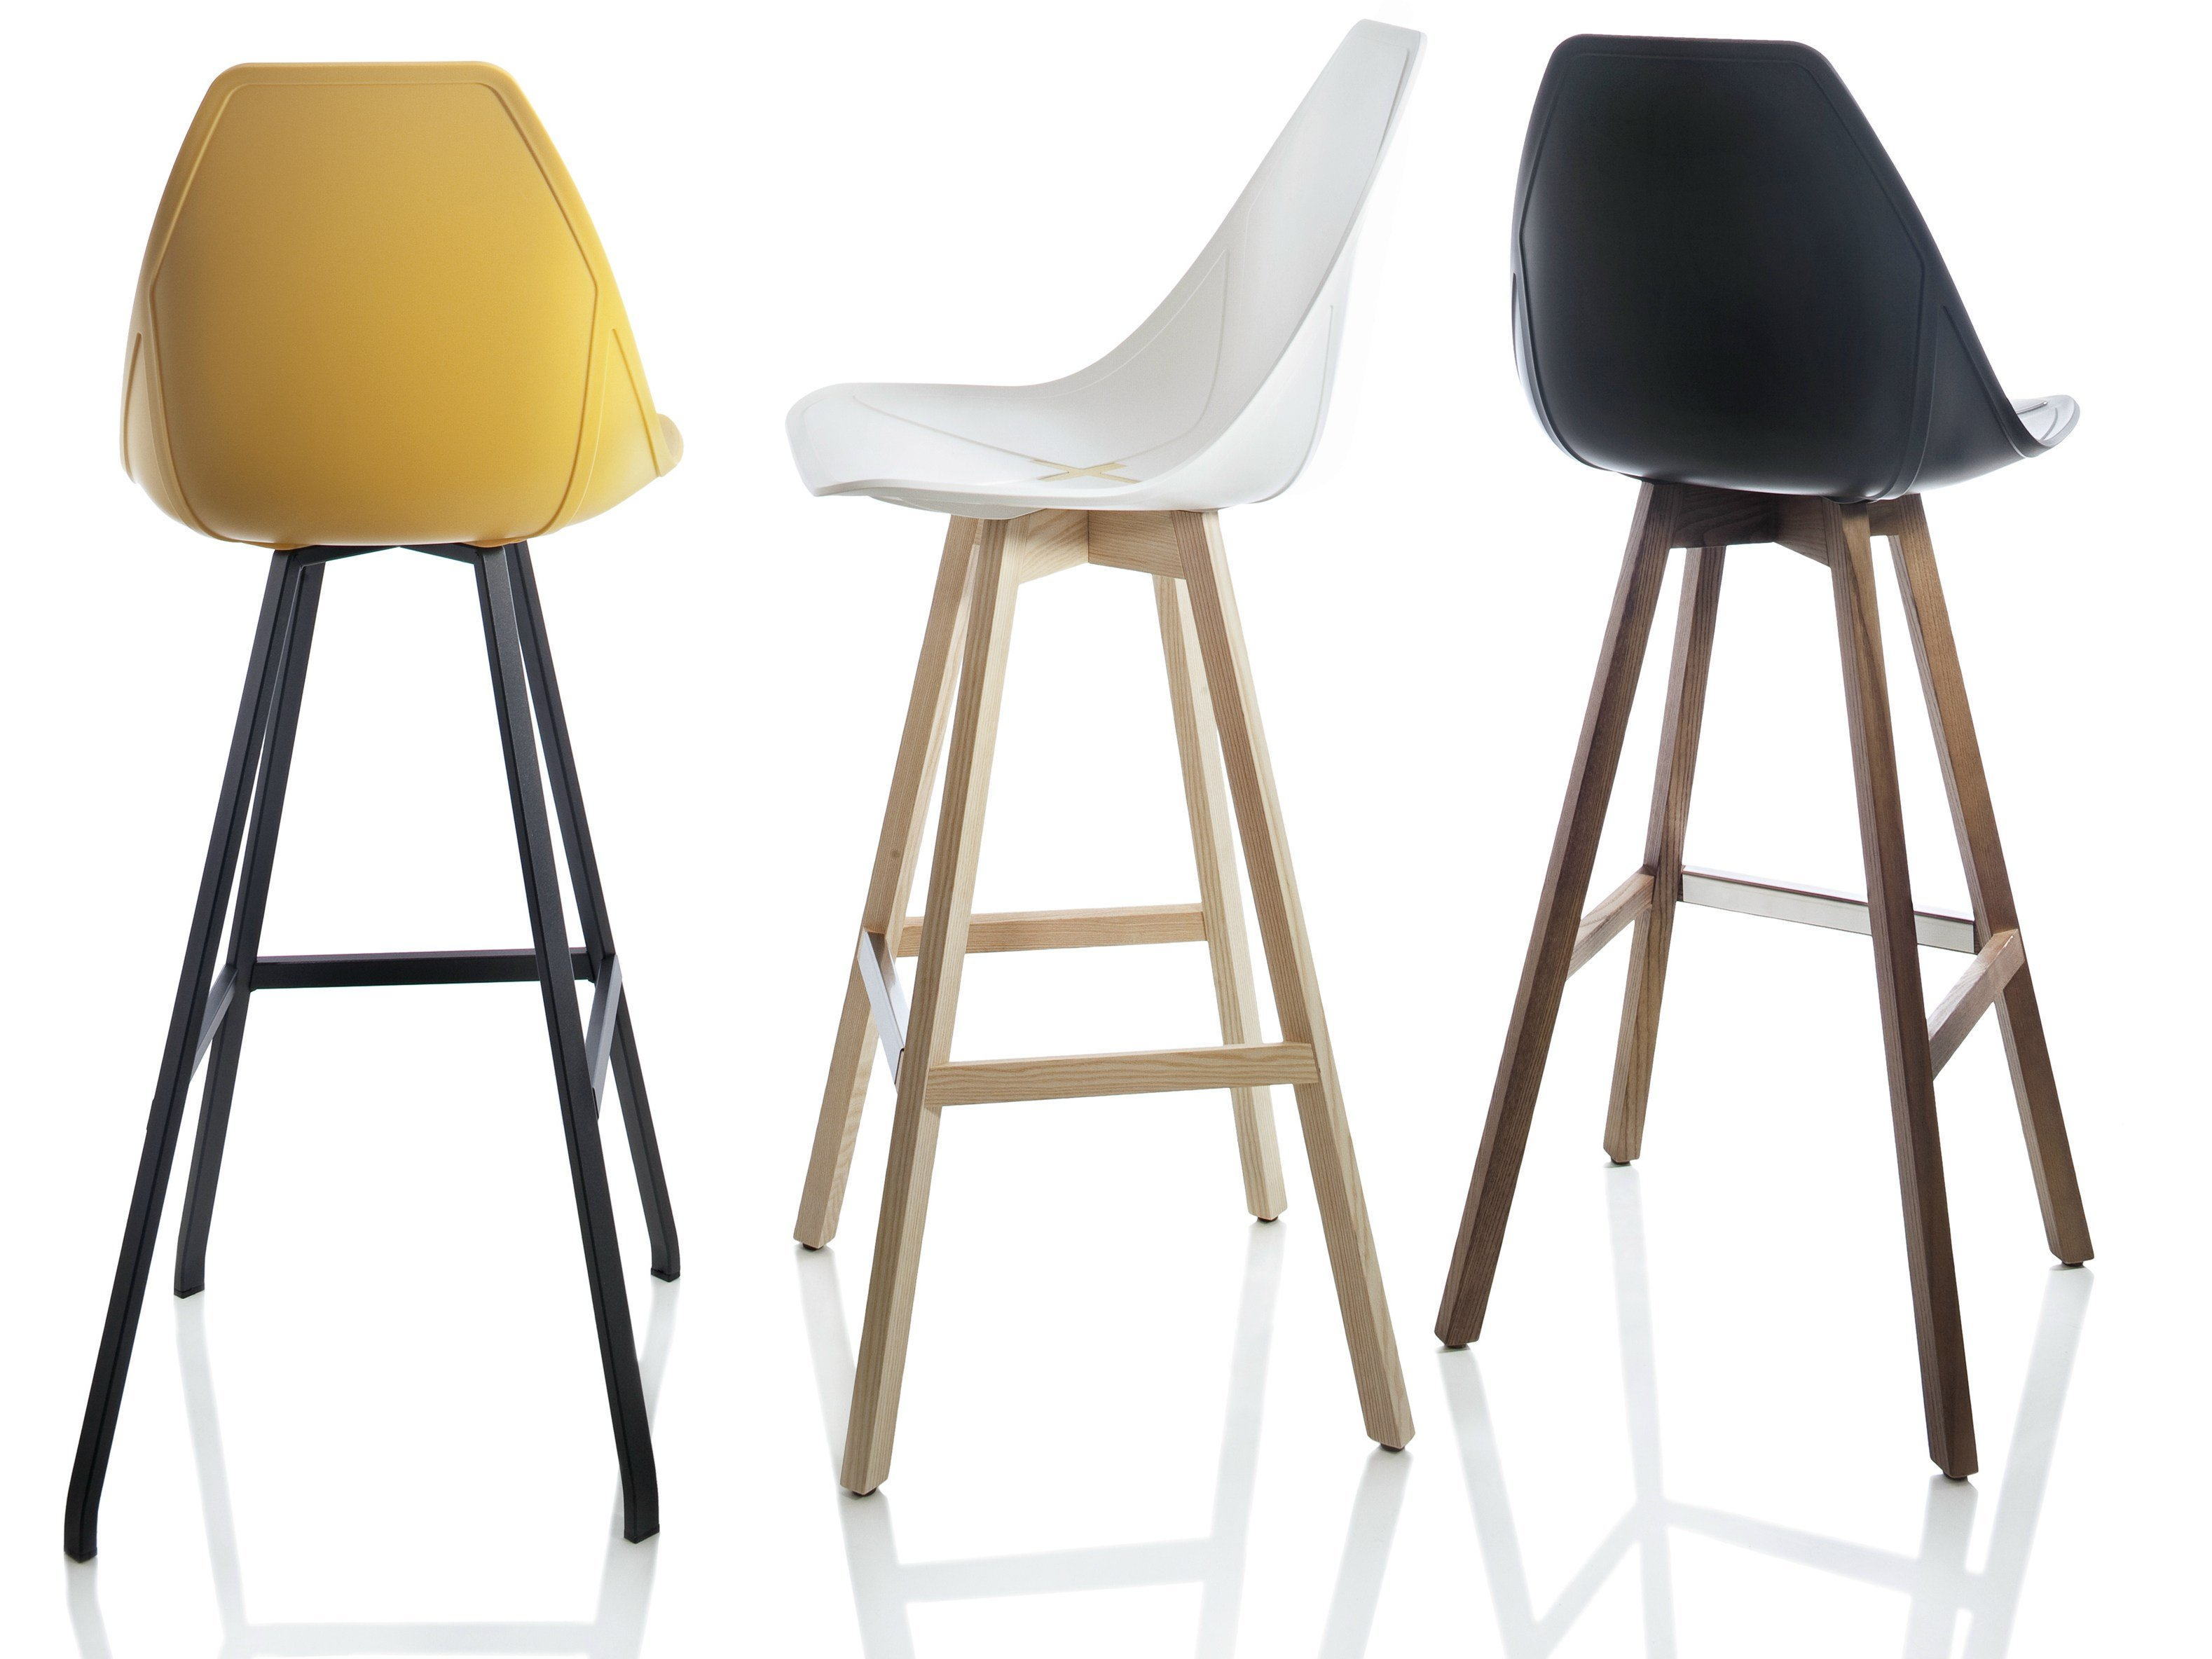 X STOOL Barstuhl Kollektion X Stool by ALMA DESIGN Design  : x stool counter stool alma design 82206 rel1e92f38f from www.archiproducts.com size 3157 x 2368 jpeg 497kB